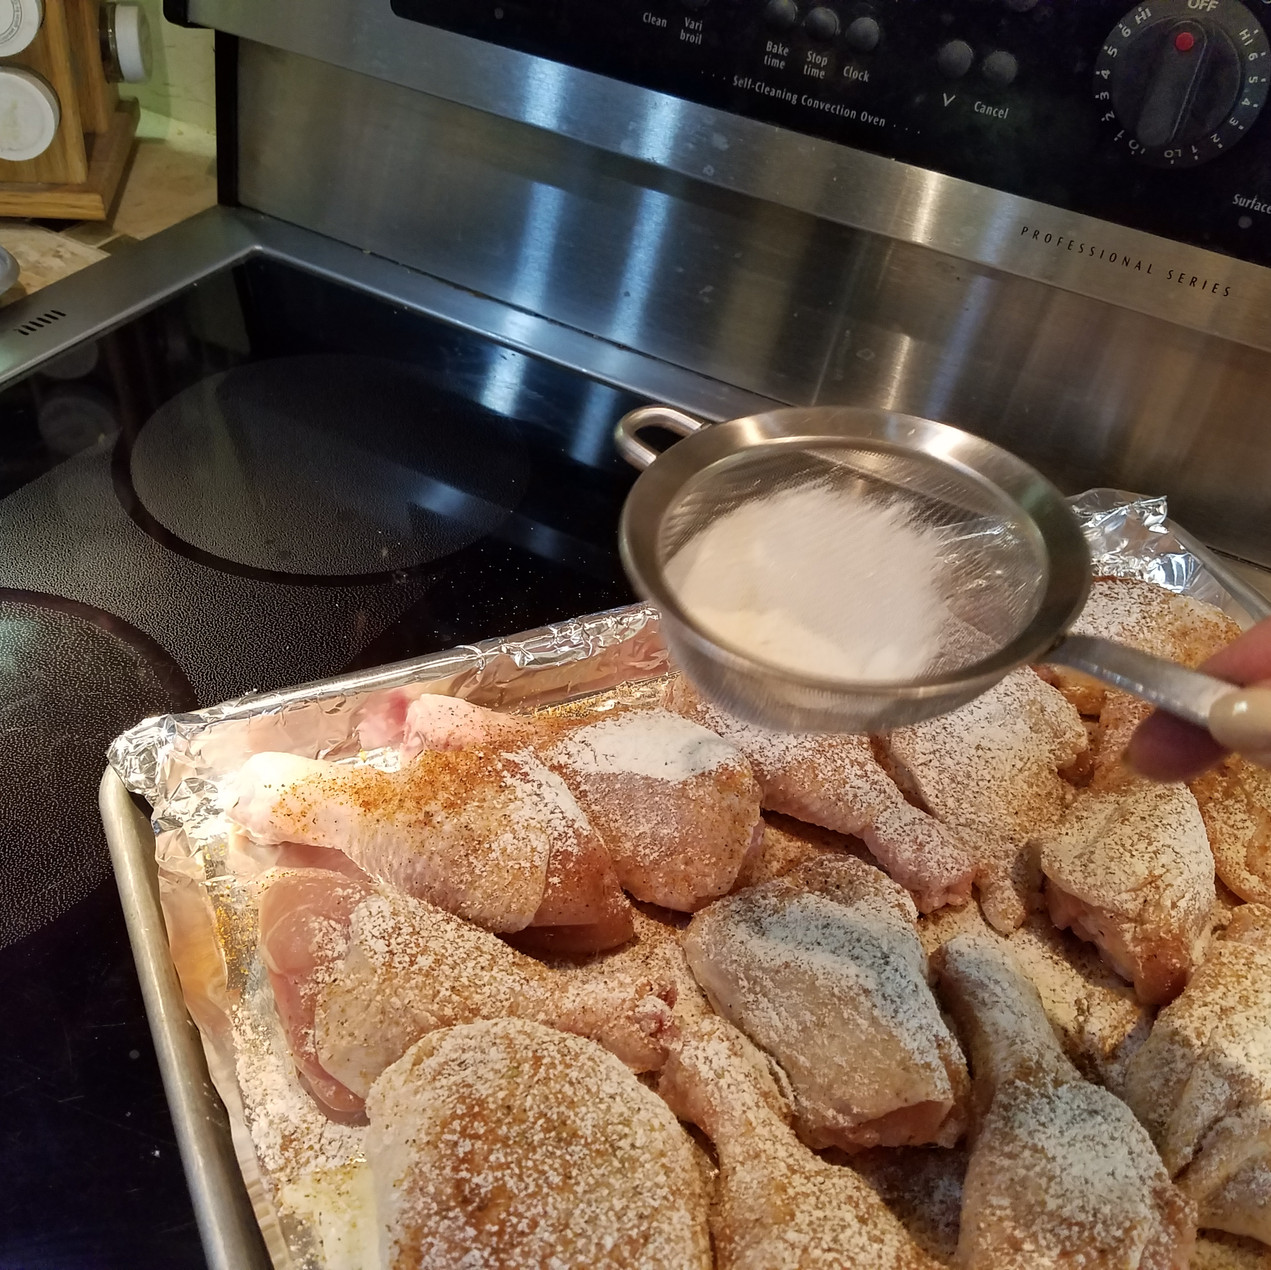 Sift some flour right over the top